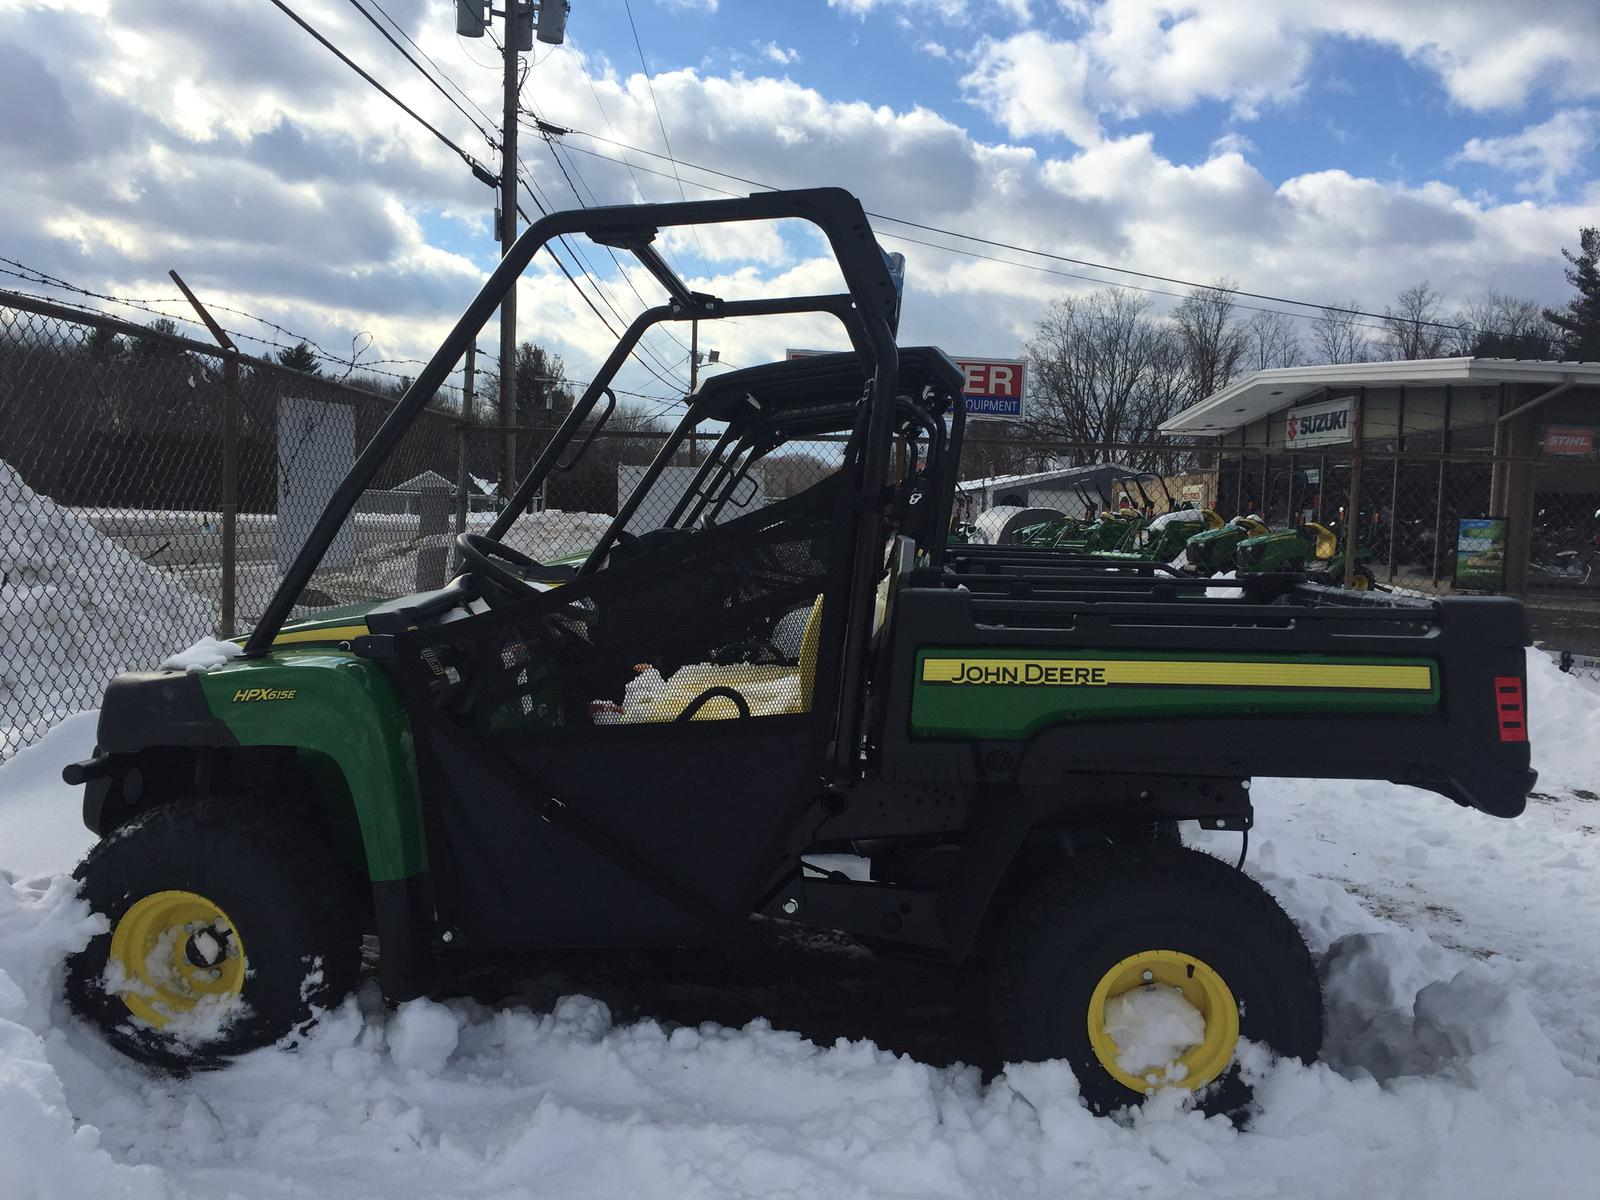 john deere new 2018 john deere gator hpx 615e for sale in granby, ma